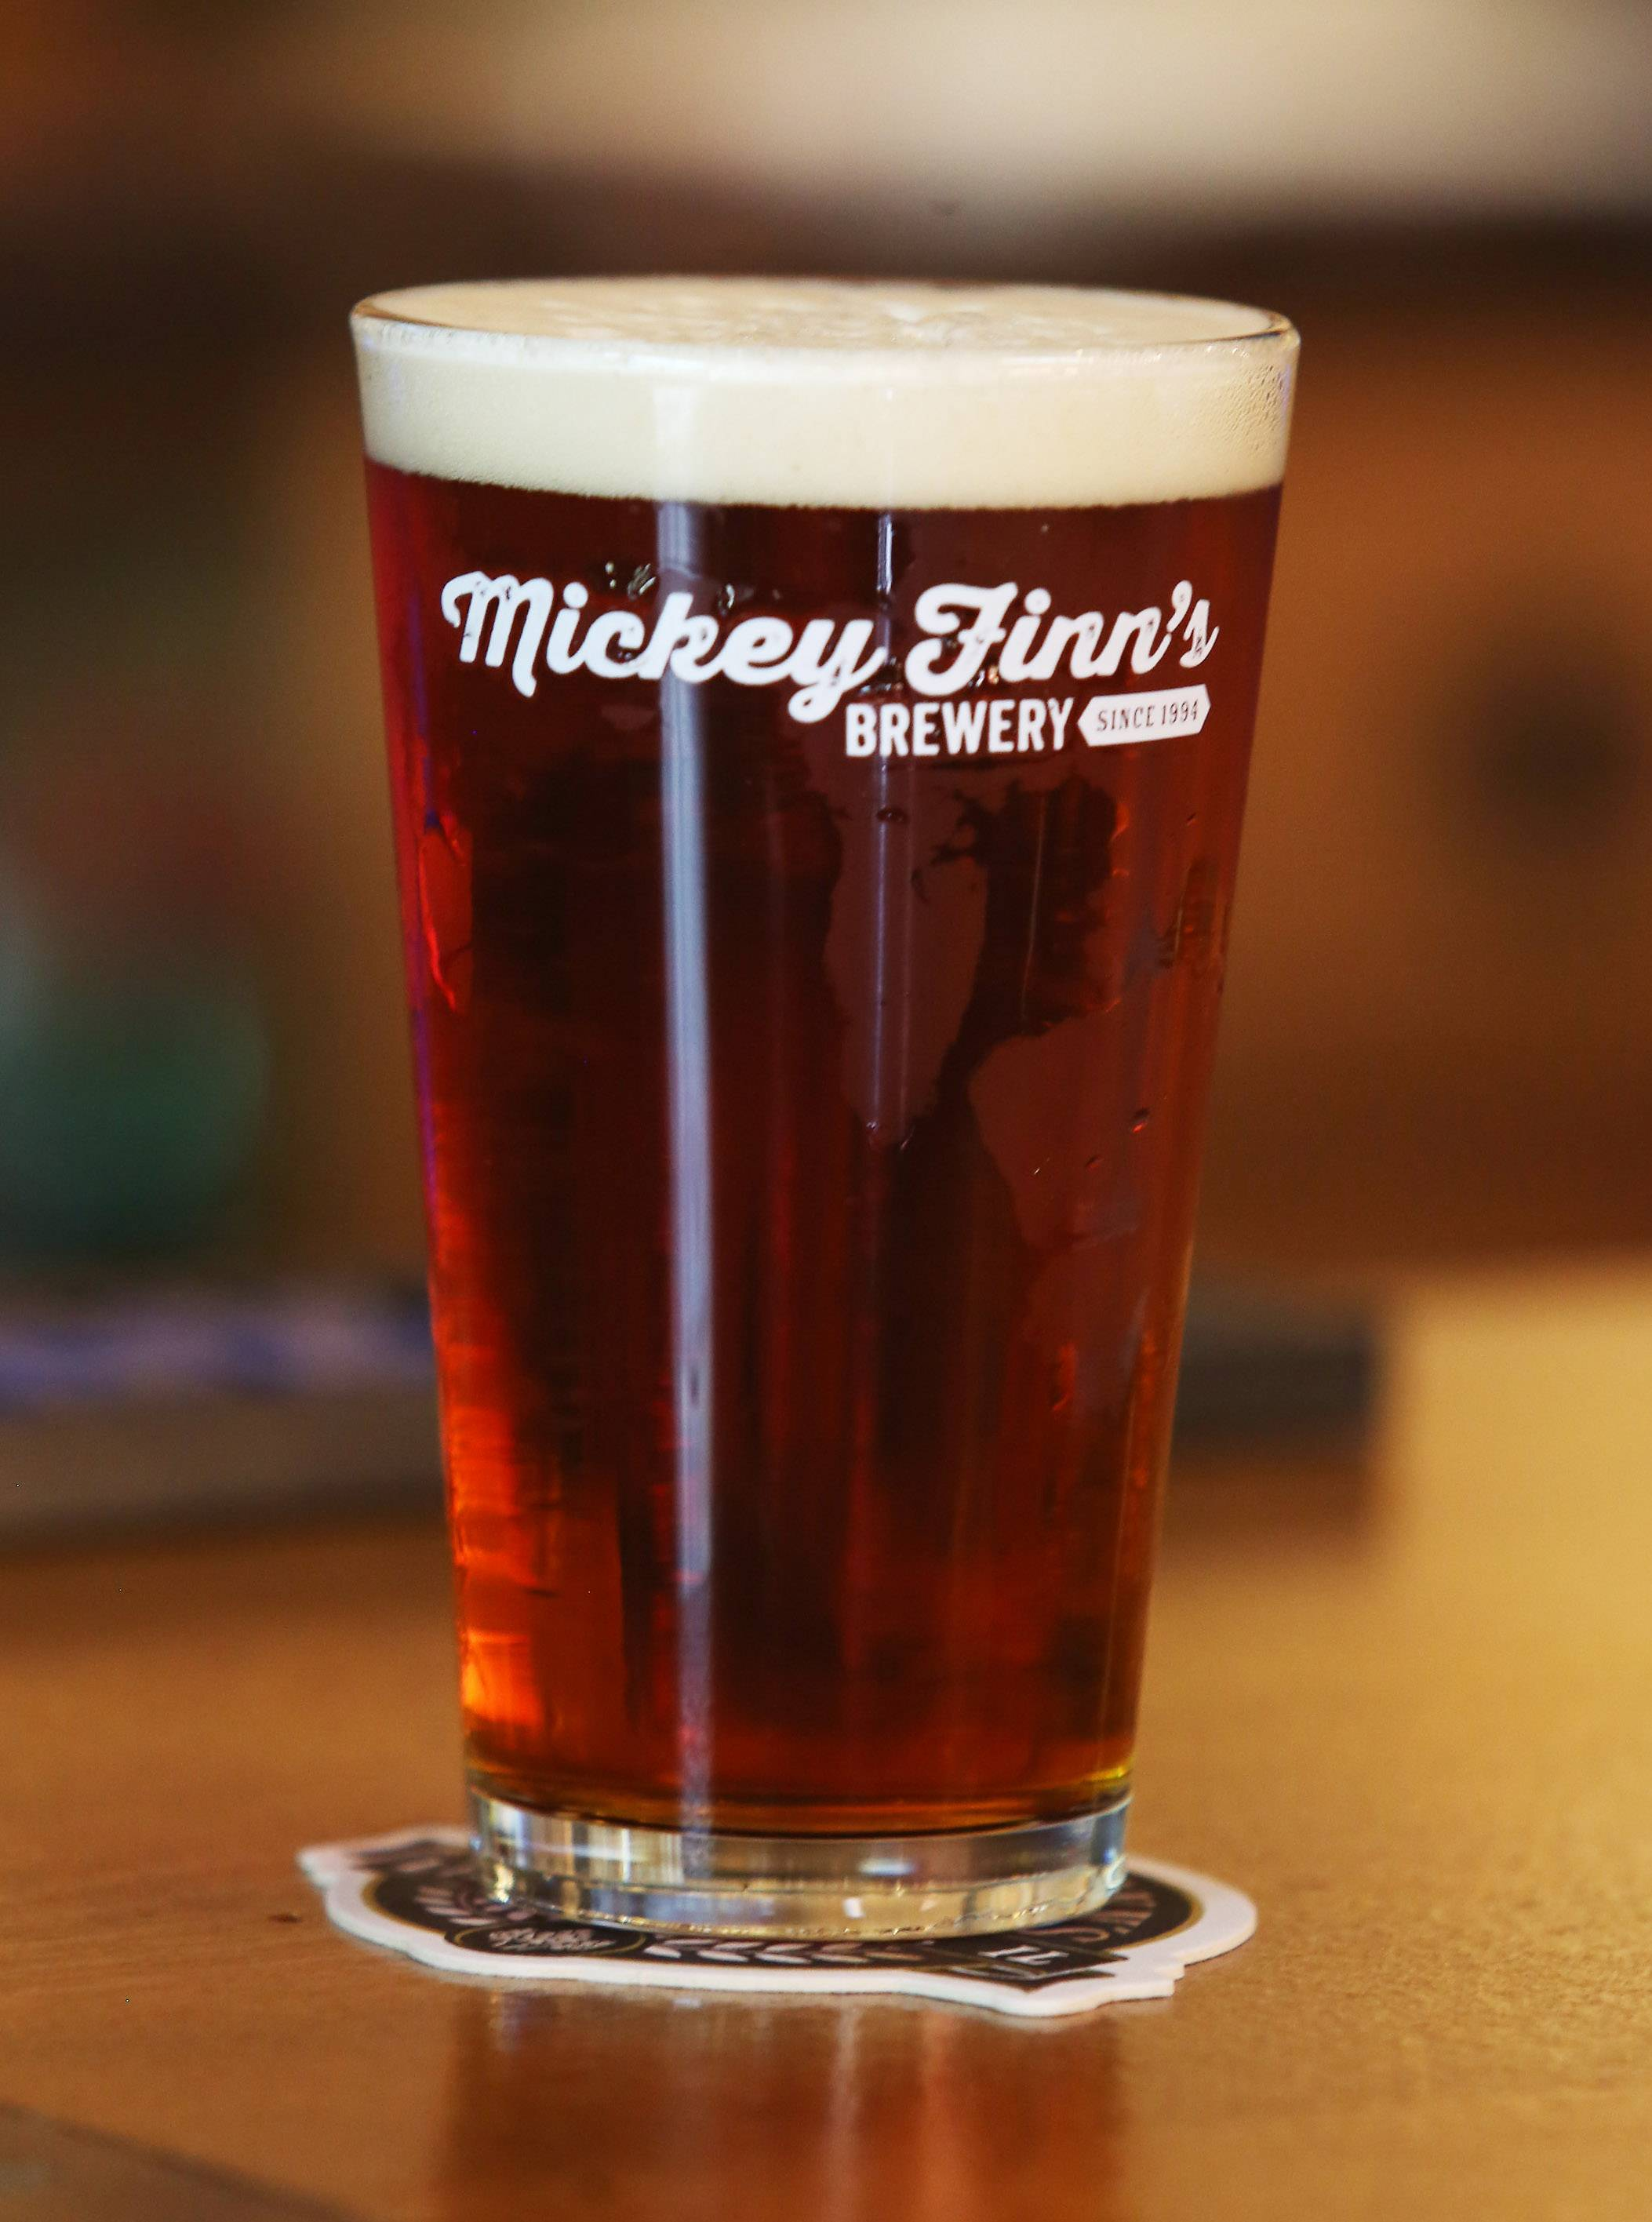 Gilbert R. Boucher II/gboucher@dailyherald.comMickey Finn's brews its Amber Ale beer on-site.